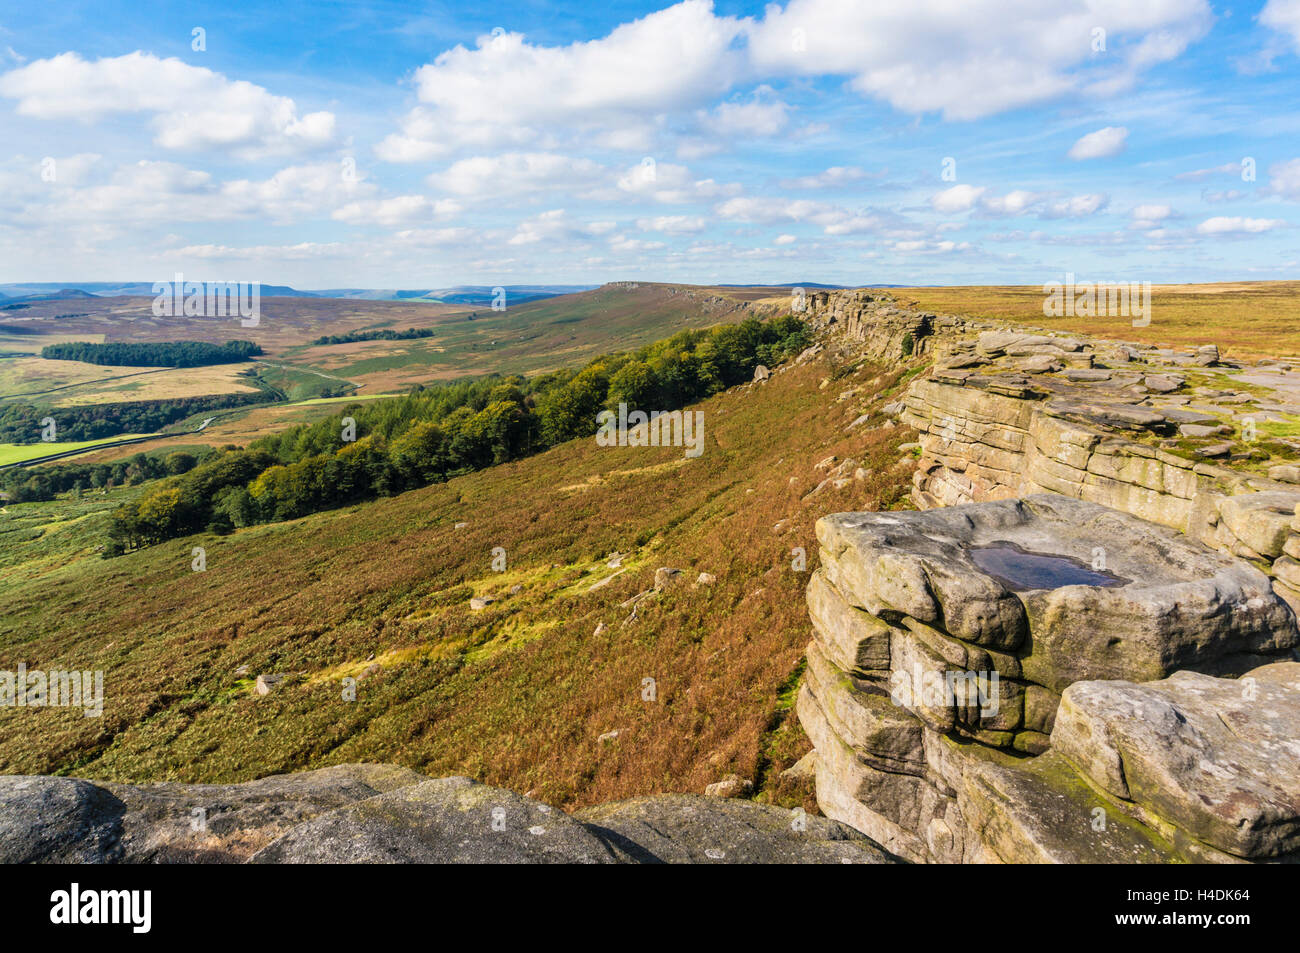 Stanage Edge Peak District Derbyshire England UK GB EU Europe - Stock Image